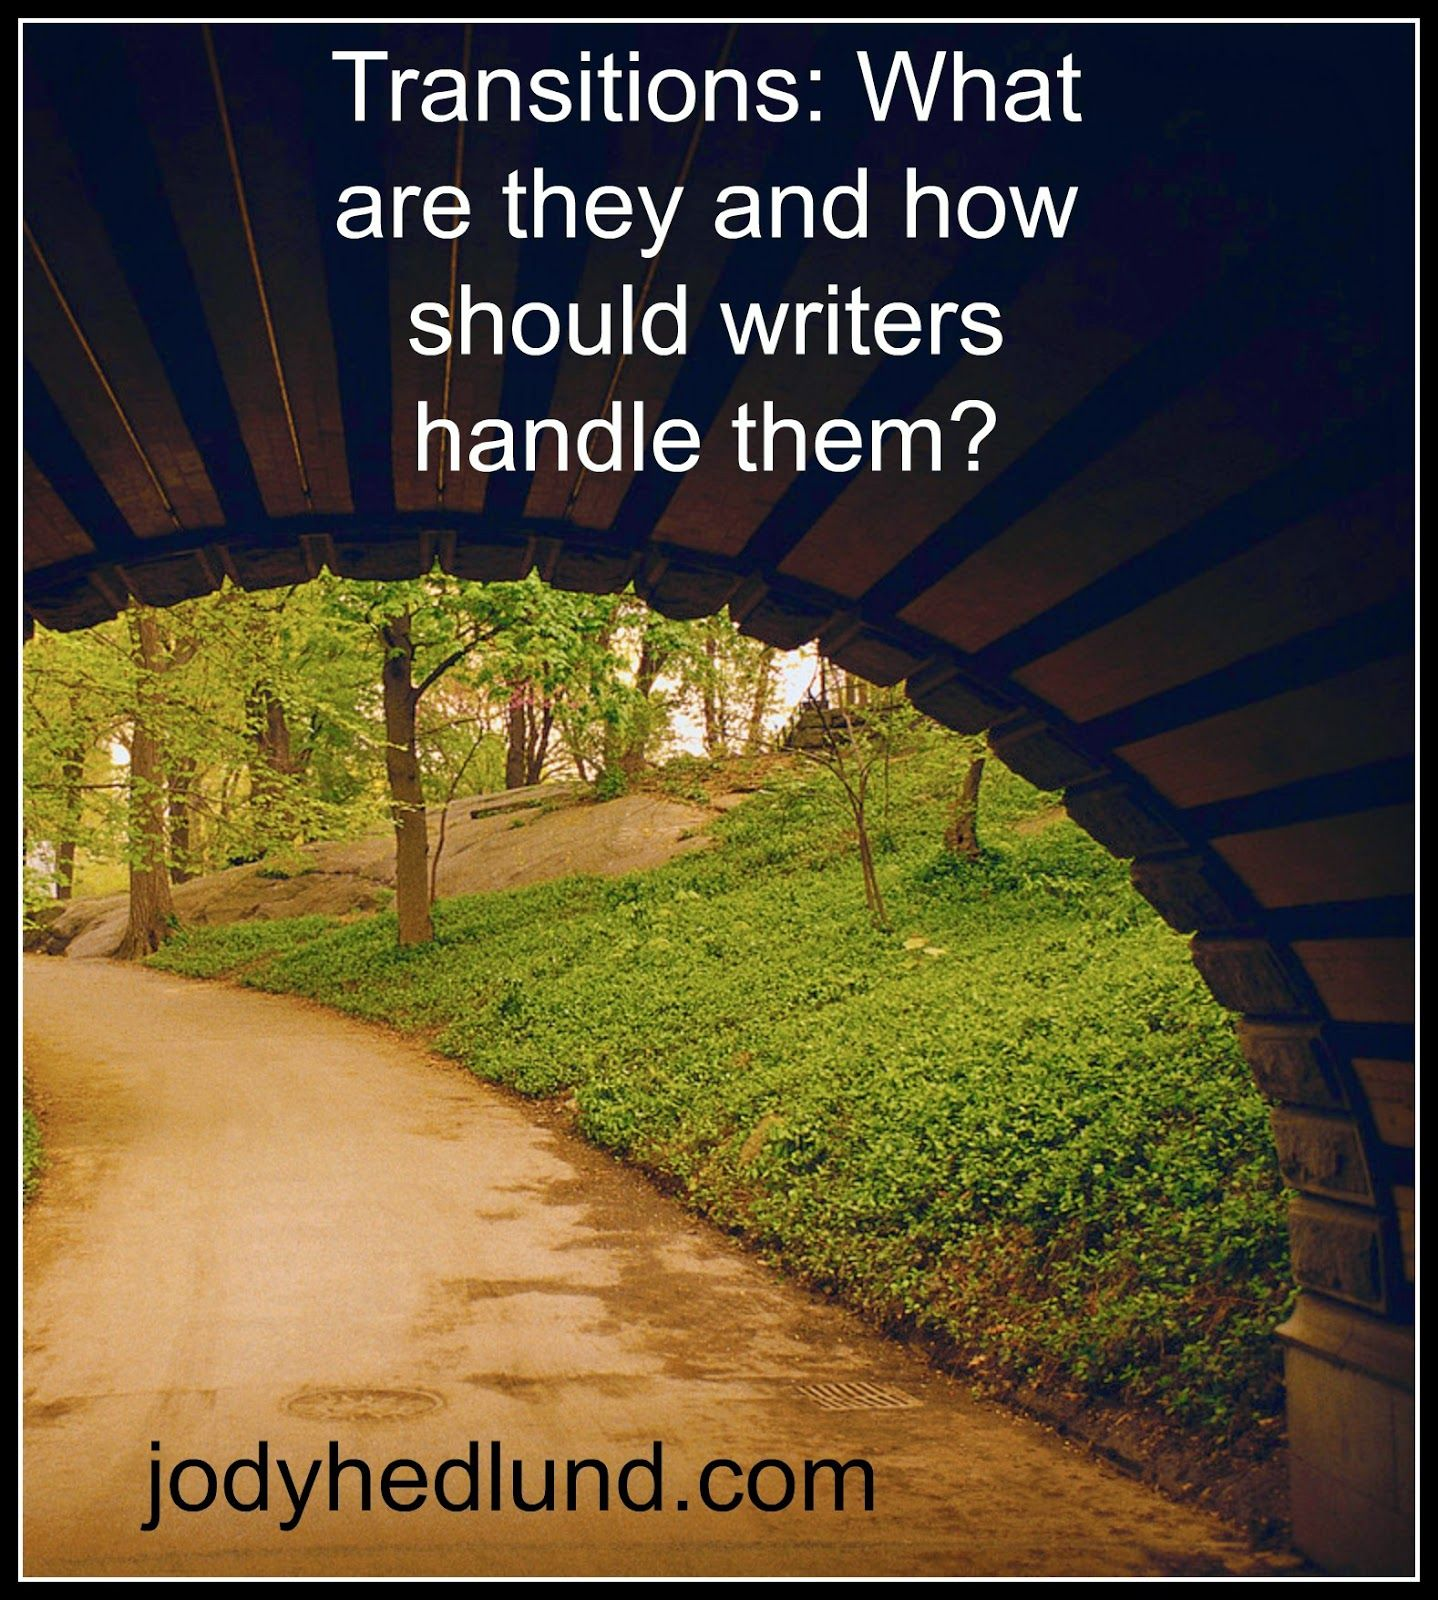 Making And Unmaking Worlds Genre Fiction And Theory: Pin By Jody Hedlund On Blog Posts For Writers